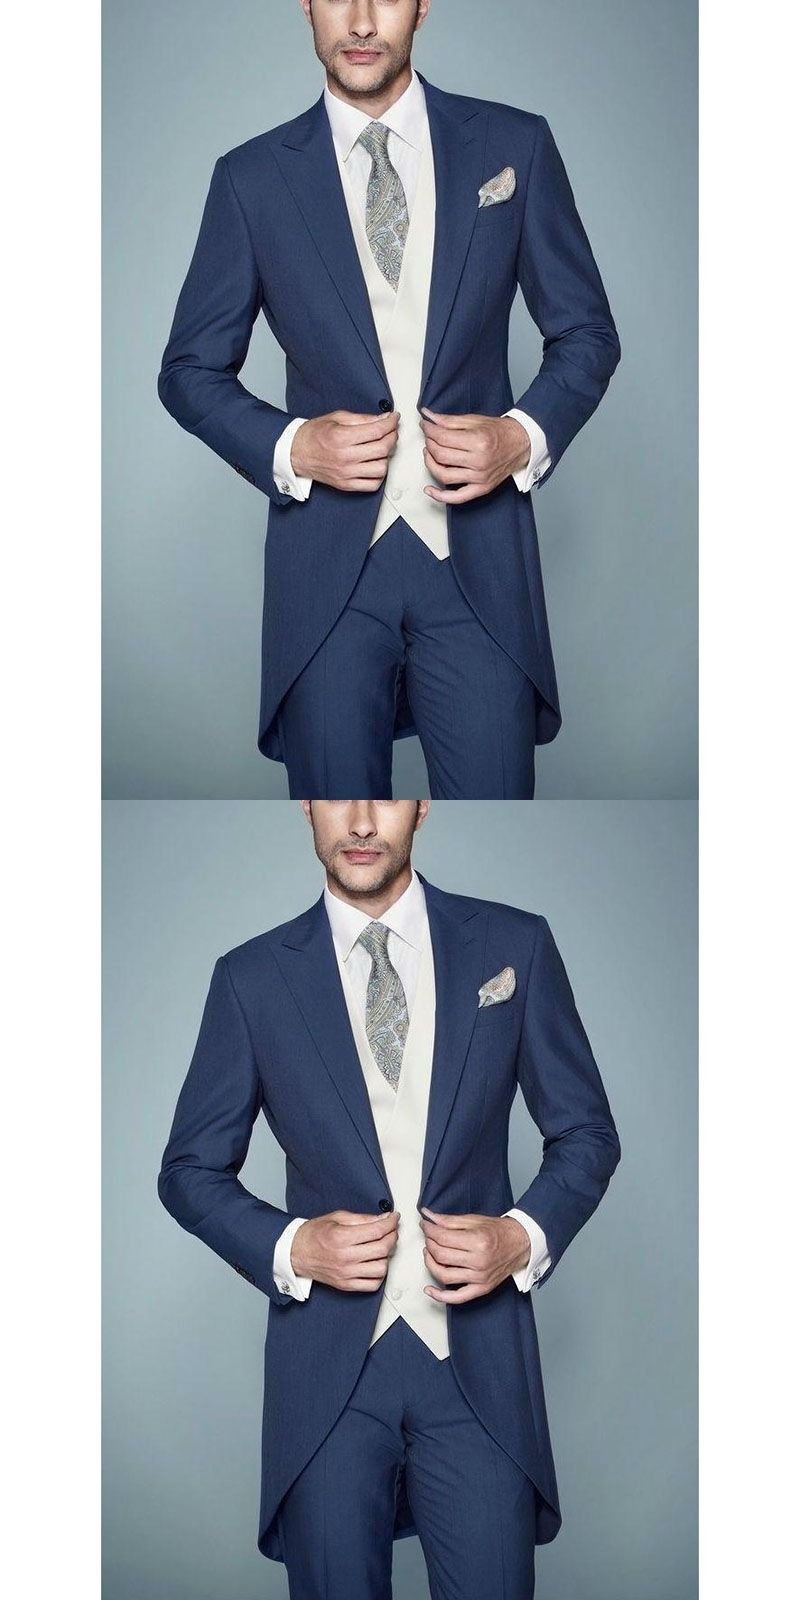 2017 New Blue Groom men Tuxedos Best Man Suit Peaked Lapel Groomsman ...